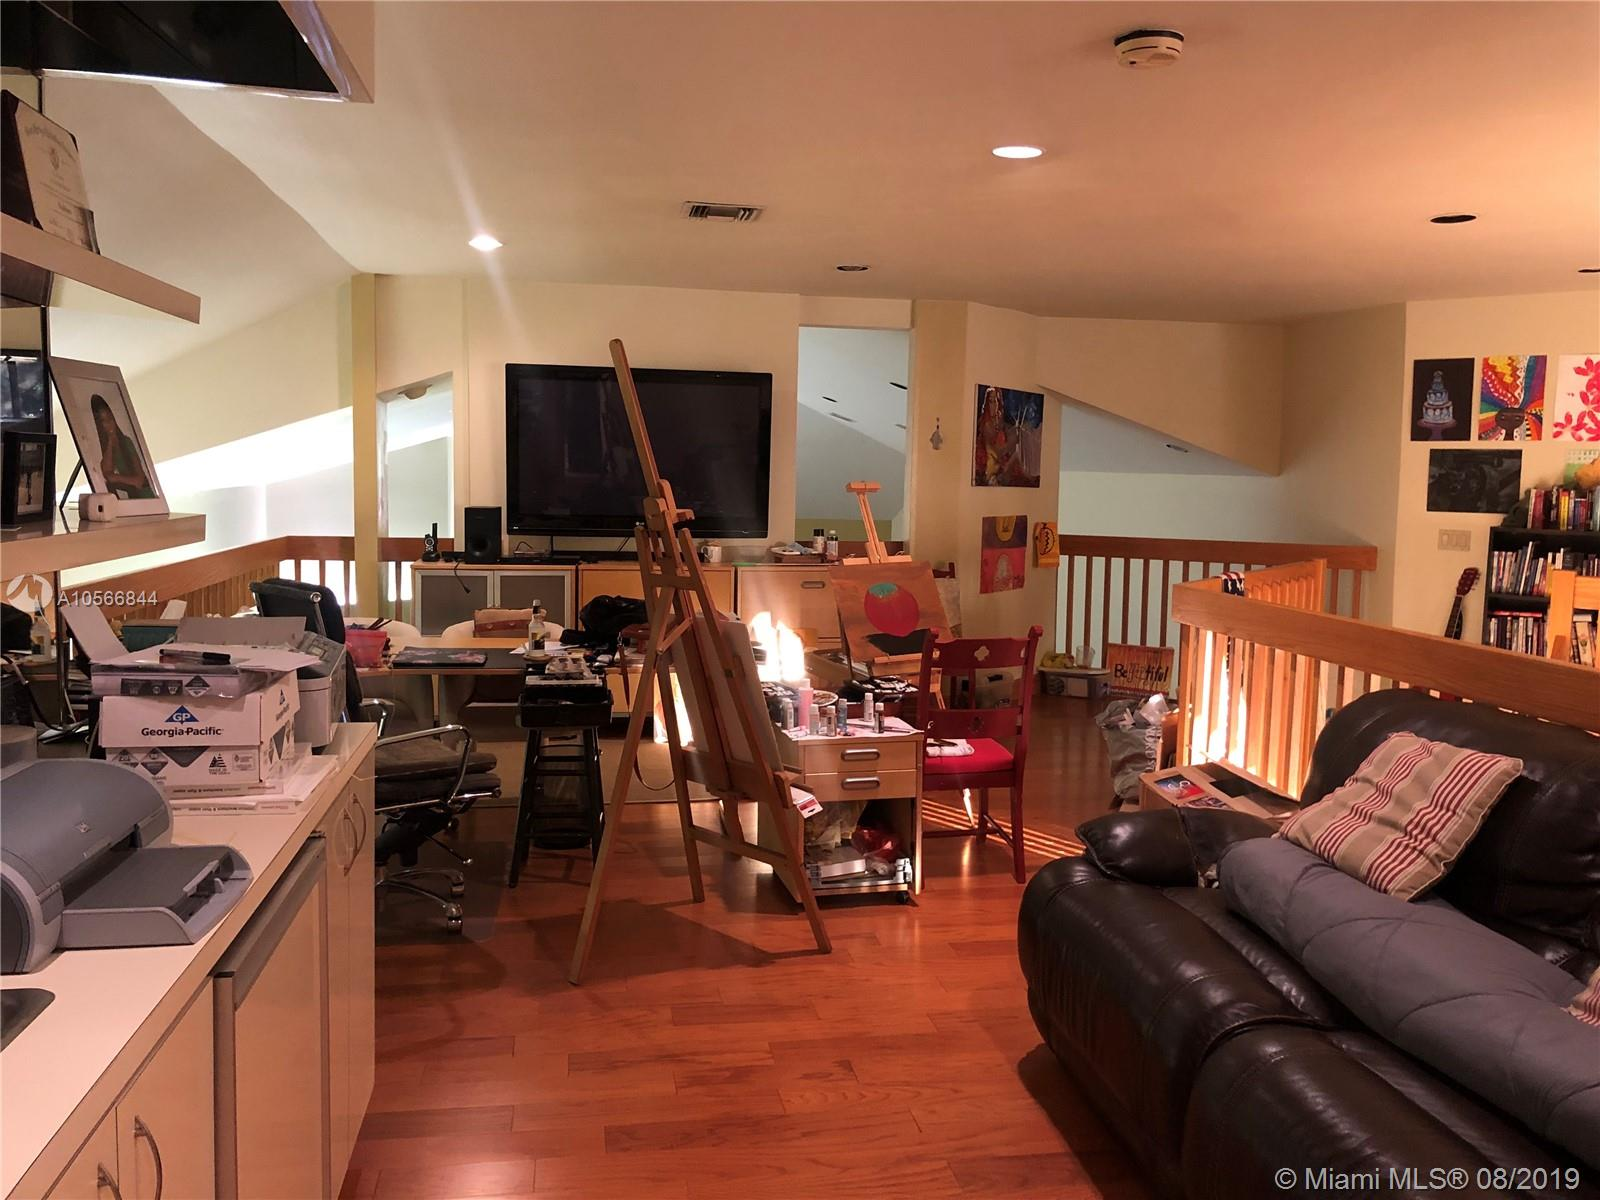 Listing A10566844 - Large Photo # 79